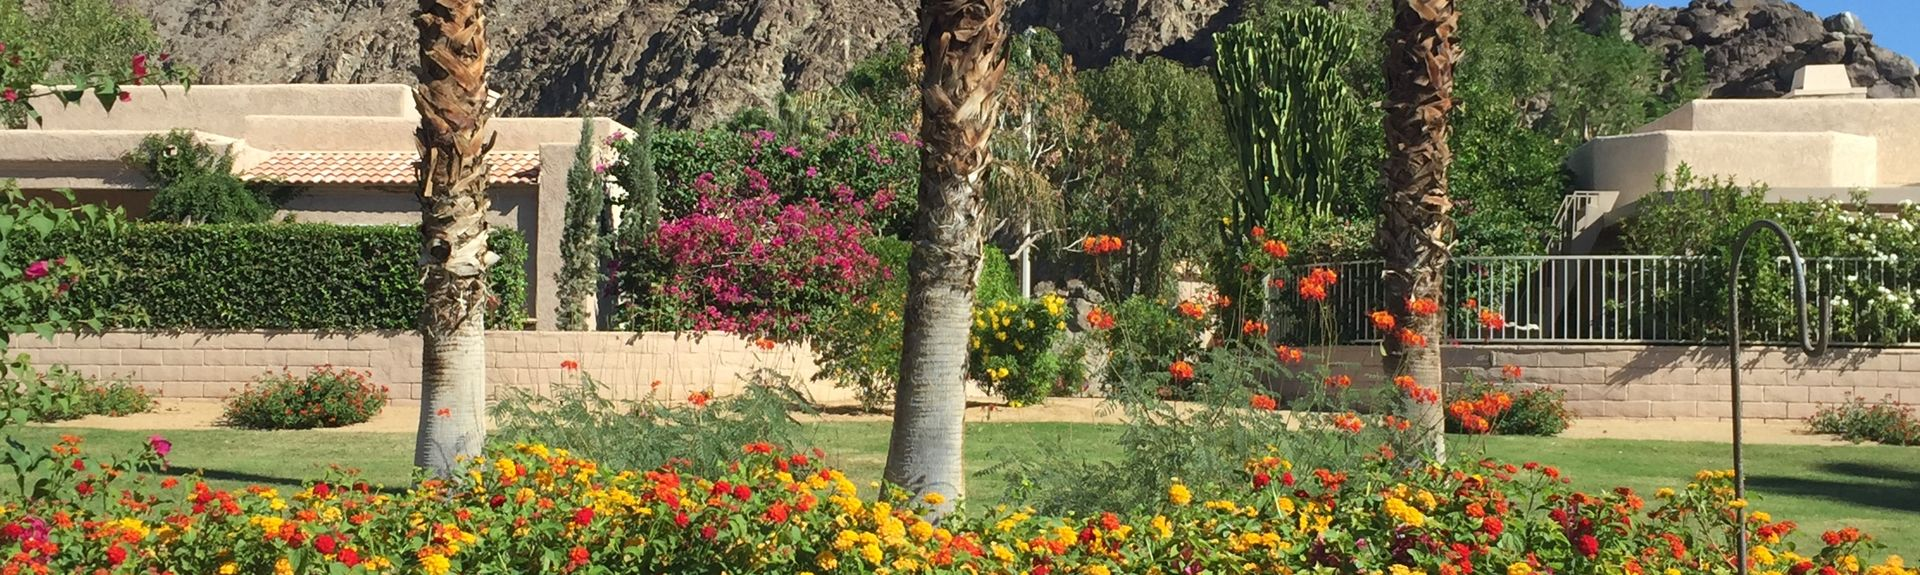 The Springs Country Club, Rancho Mirage, CA, USA